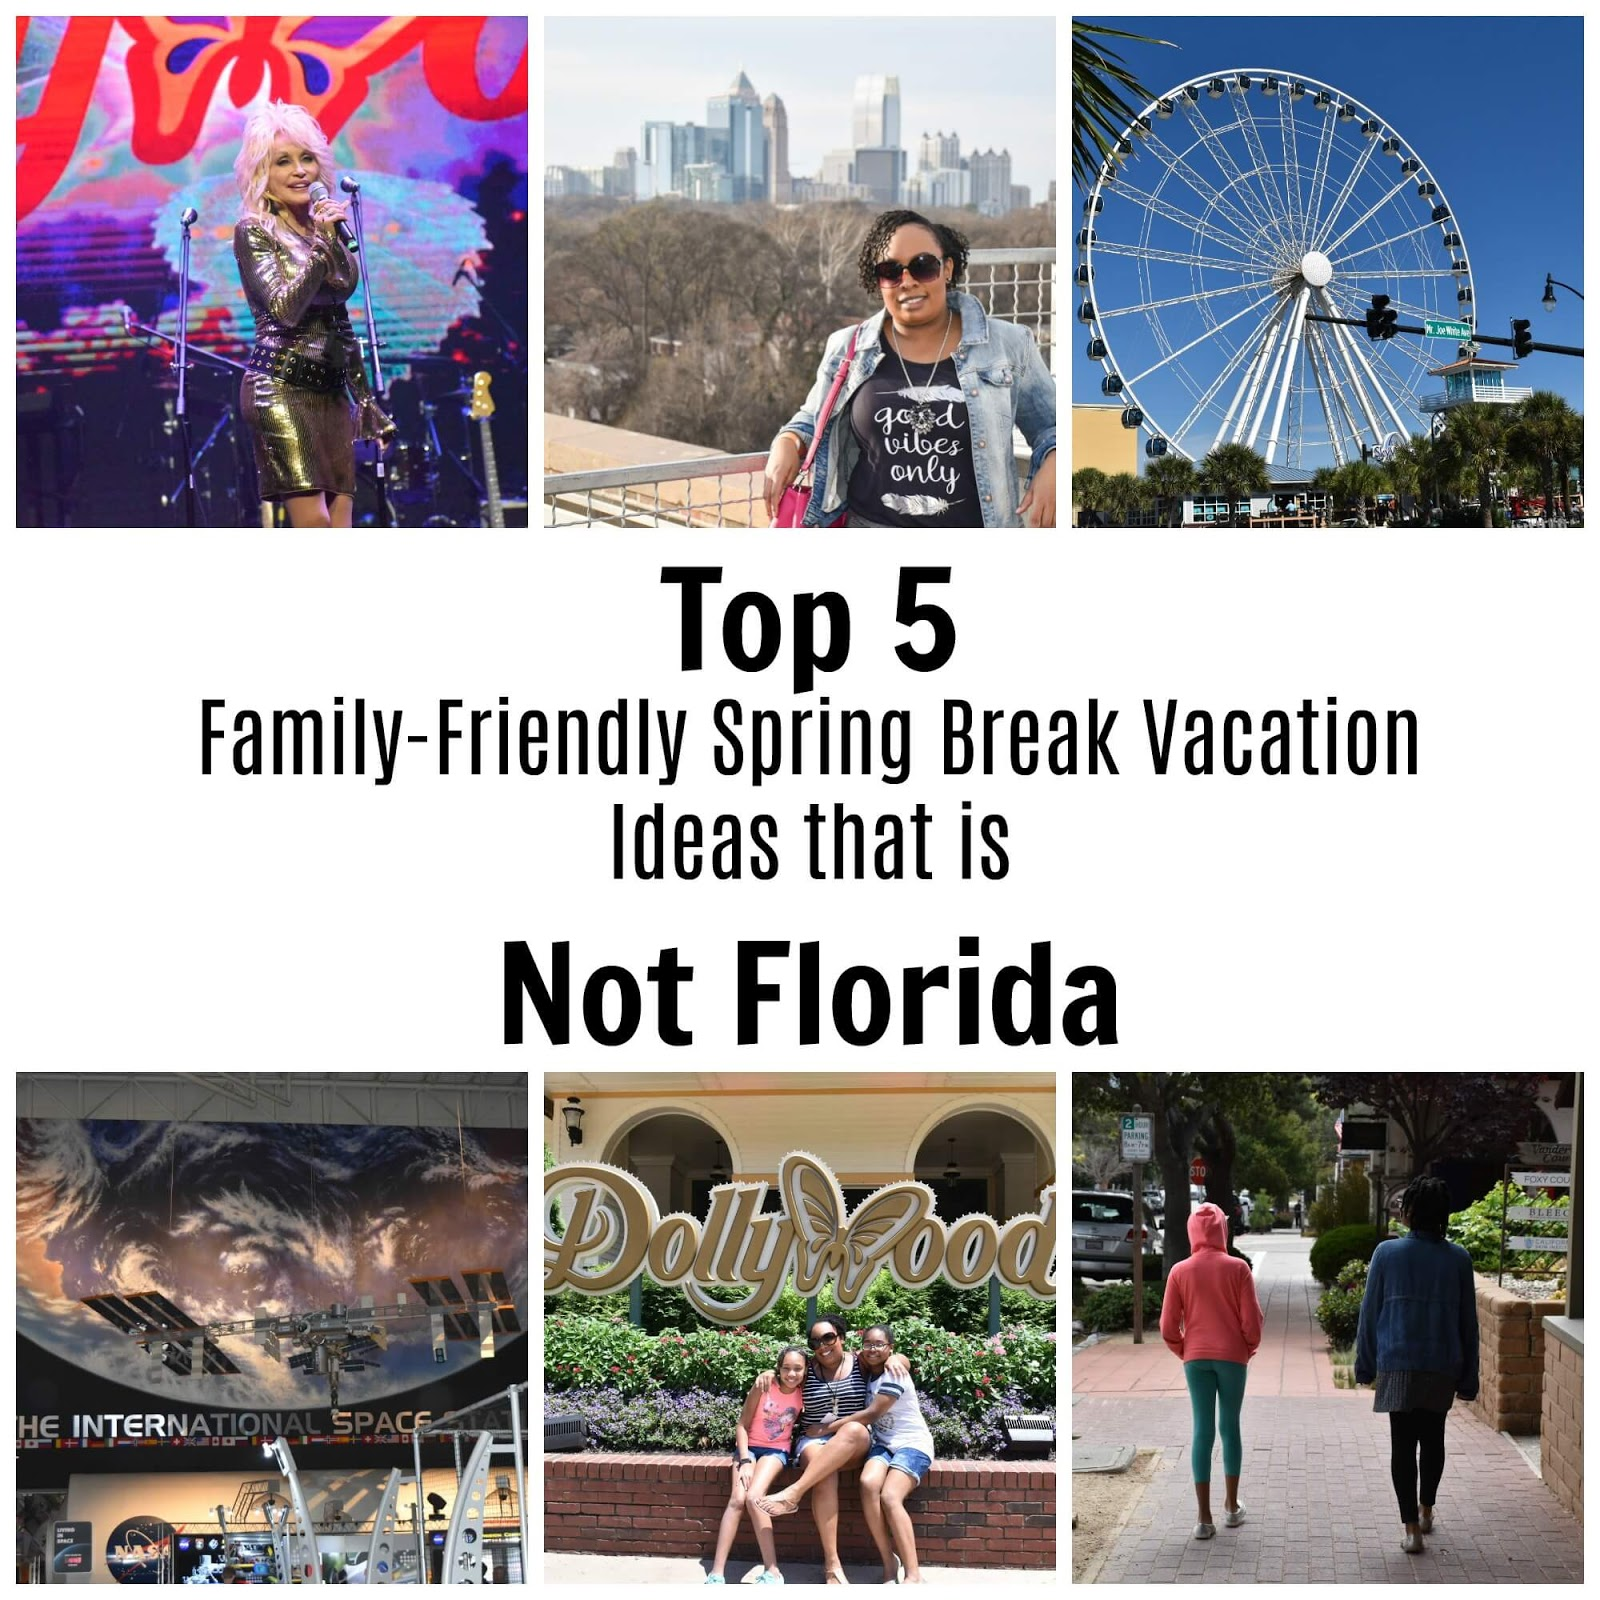 Top 5 Family-Friendly Spring Break Vacation Ideas that is Not Florida  via  www.productreviewmom.com